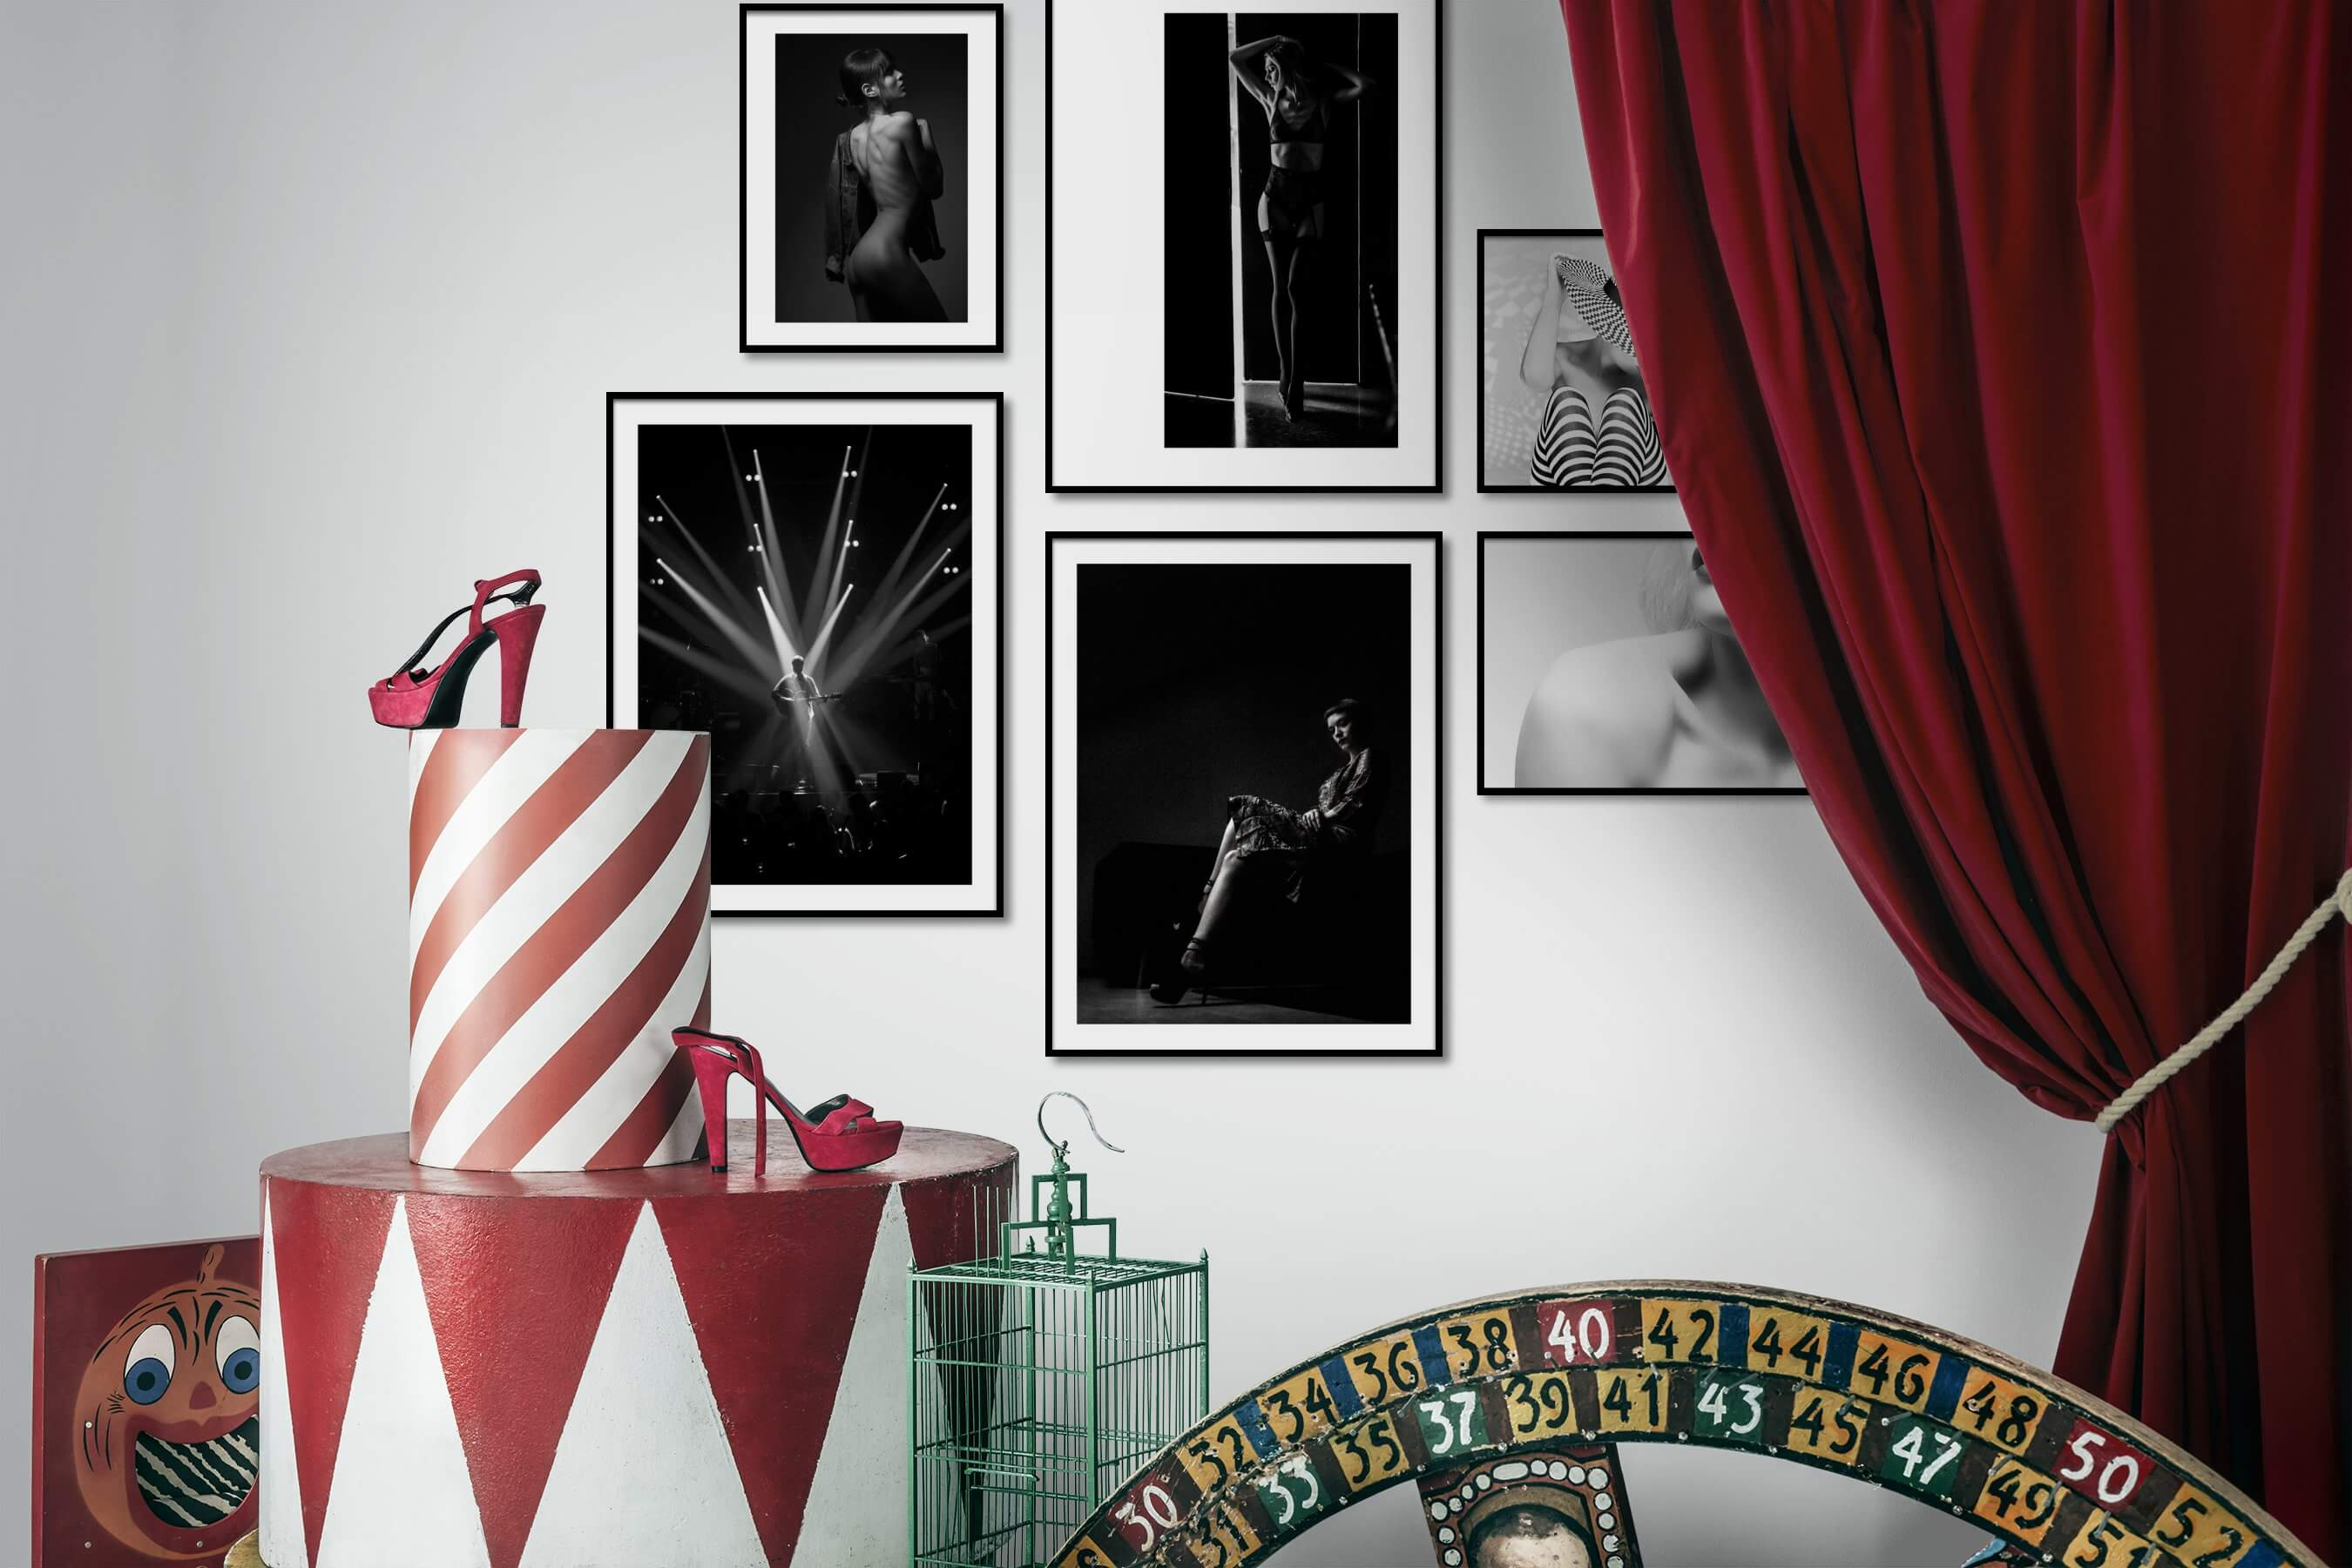 Gallery wall idea with six framed pictures arranged on a wall depicting Fashion & Beauty, Black & White, For the Moderate, and For the Minimalist